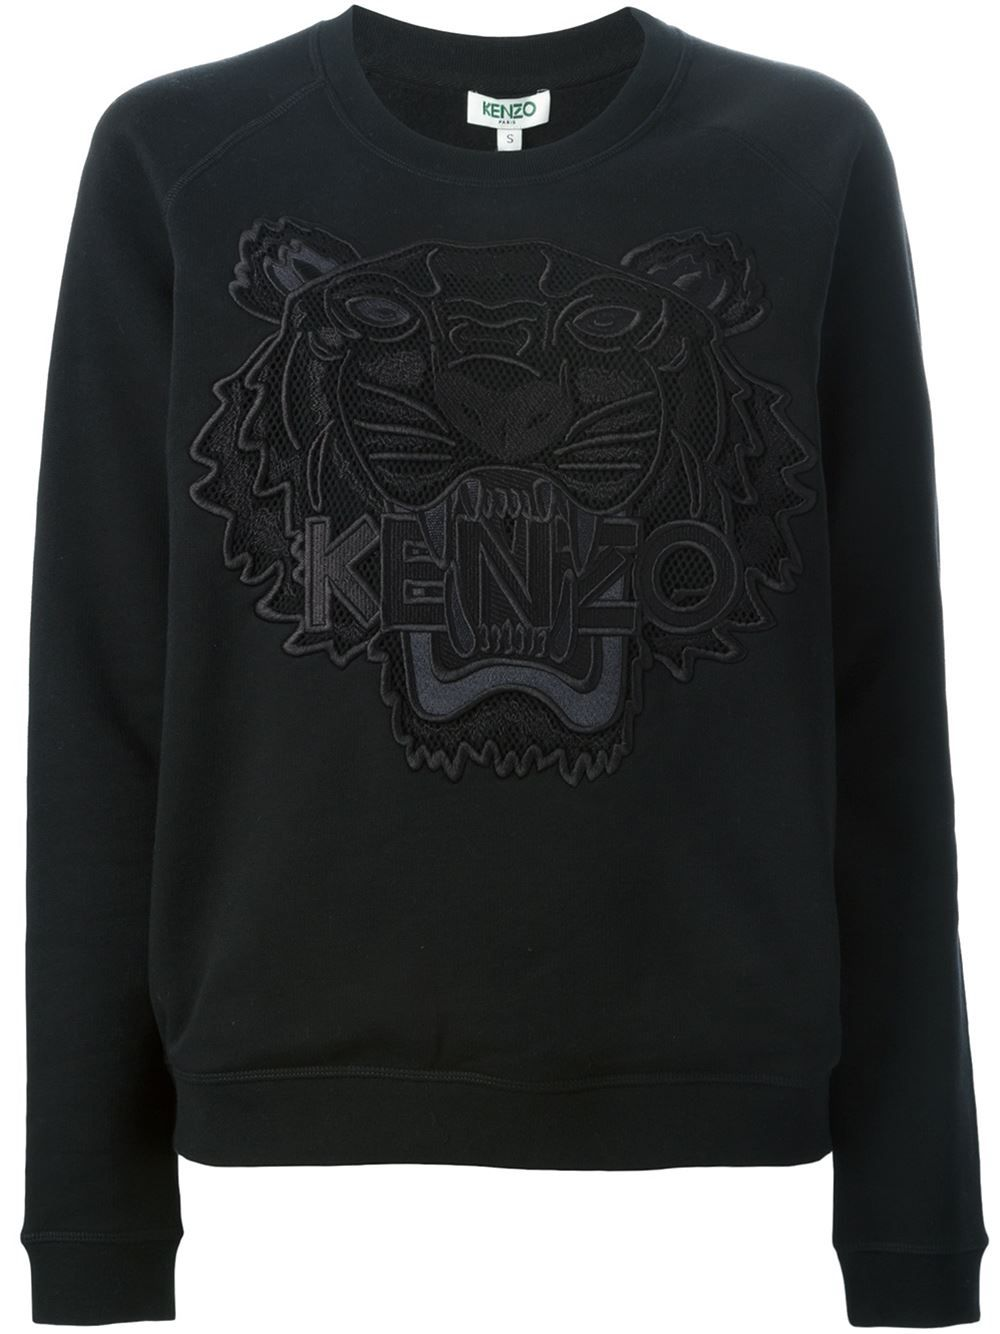 1f39a5cf Shop Kenzo 'Tiger' sweatshirt in Changing Room from the world's best  independent boutiques at farfetch.com. Shop 300 boutiques at one address.